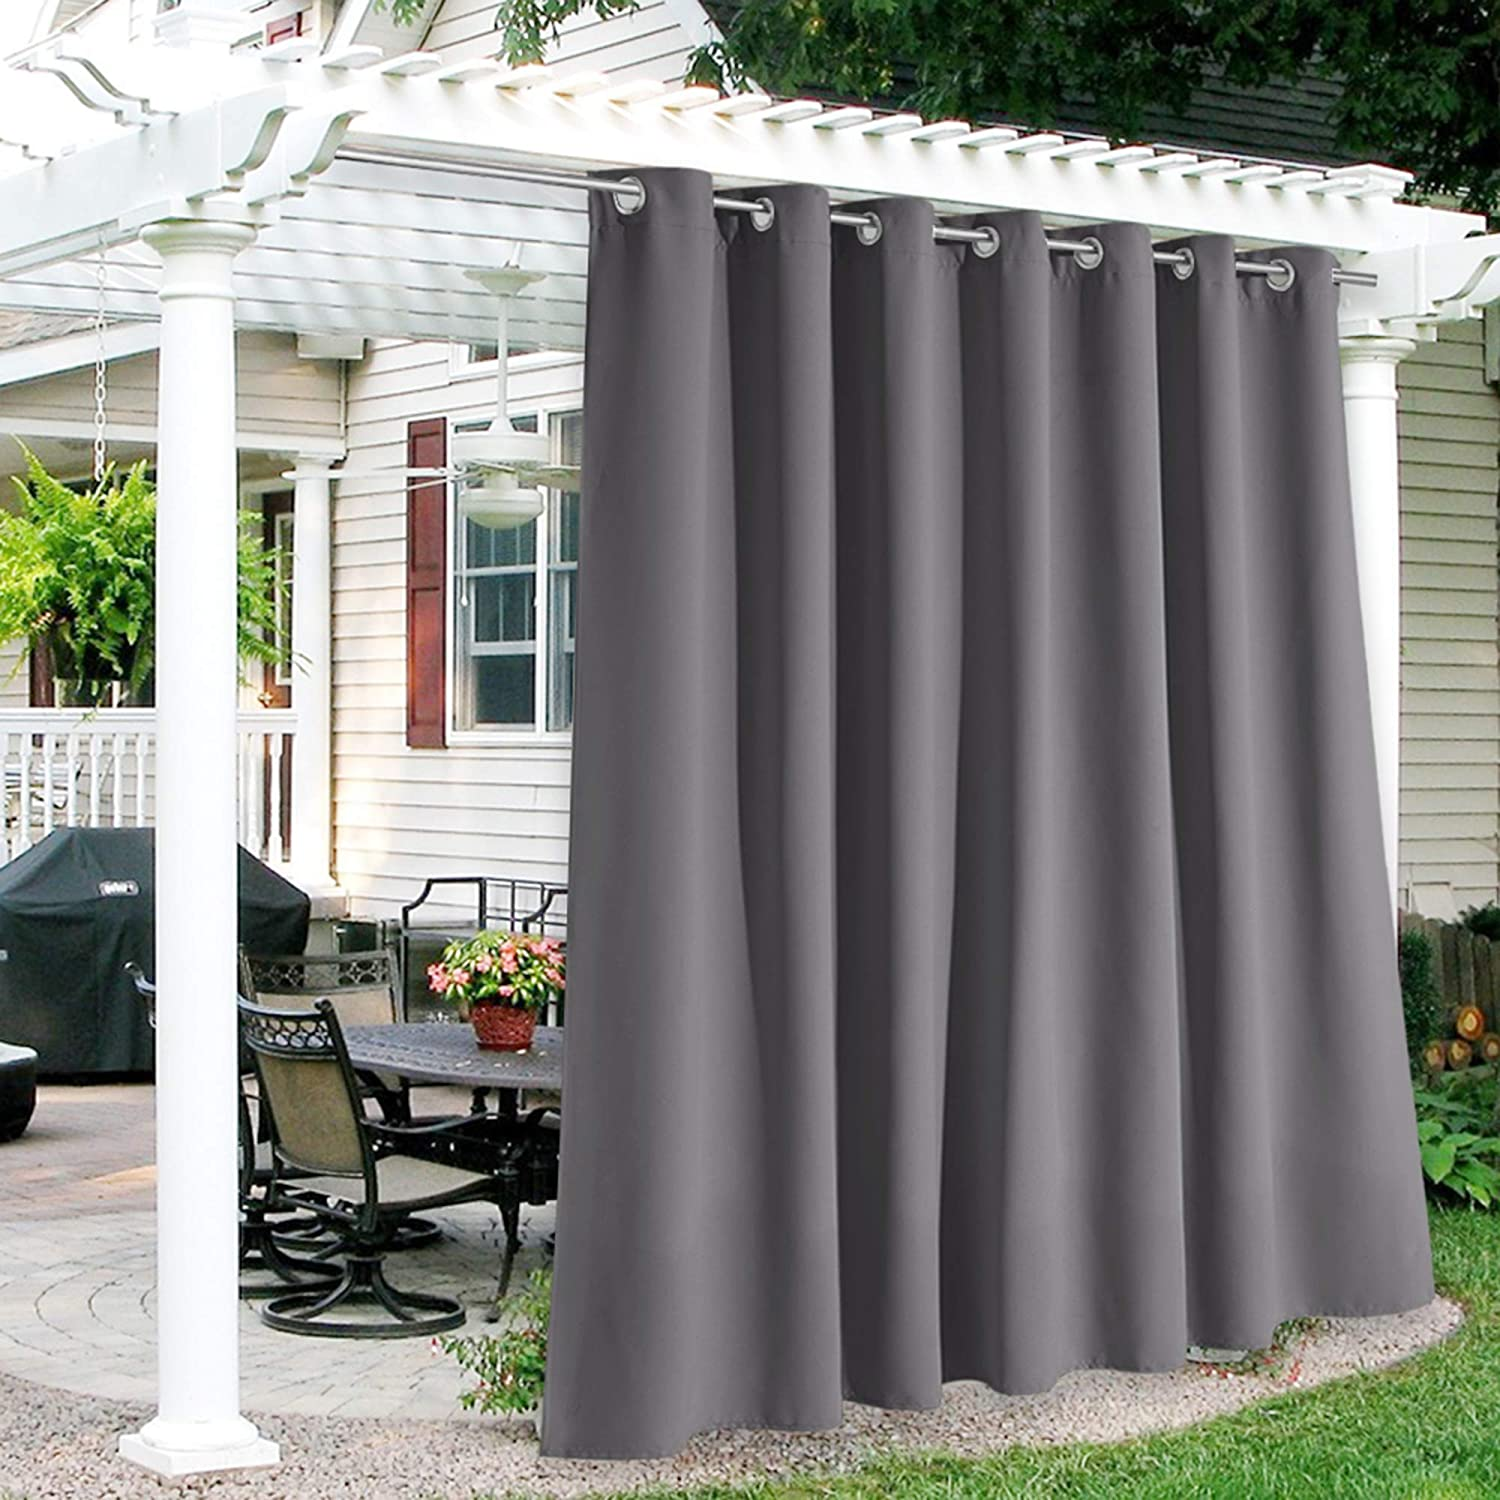 RYB HOME 100 inch Width Outdoor Waterproof Curtains, Sunlight Blackout Insulated Drapes for High Ceiling Patio Door / Front Porch / Pavilion / Arbor, 100 x 108 inches Long, 1 Panel, Grey